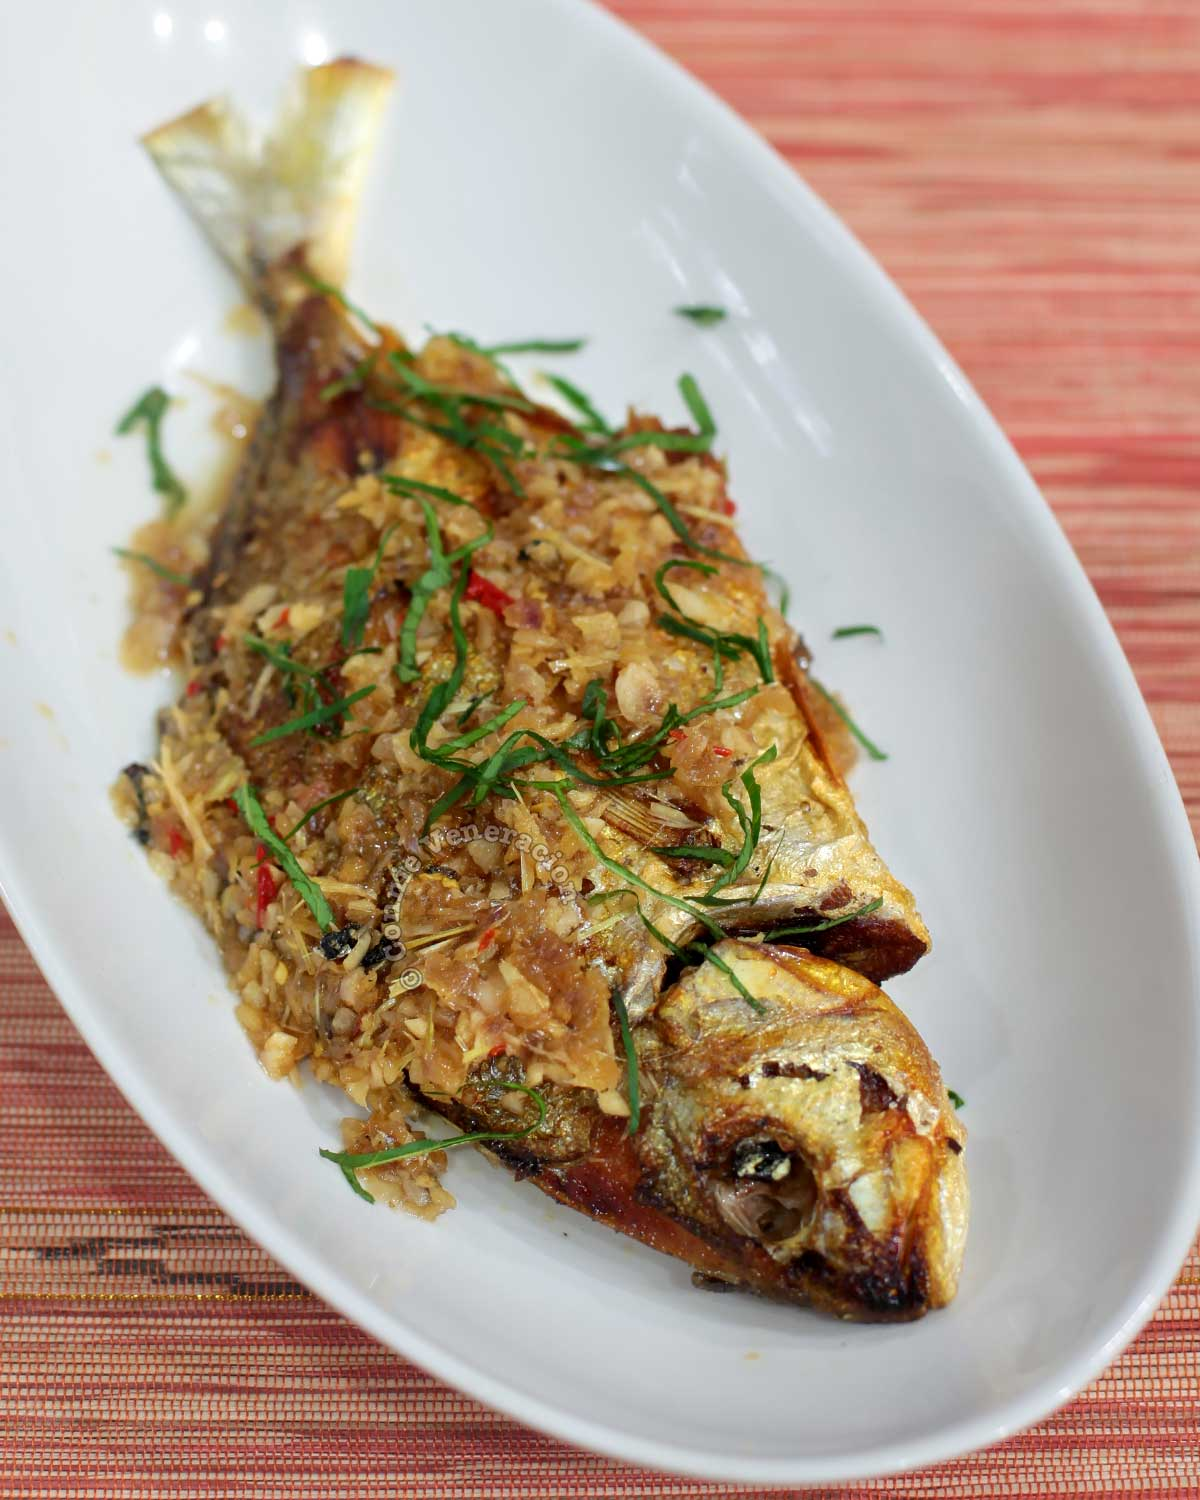 Whole Fish with Lemongrass and Ginger Sauce in White Bowl